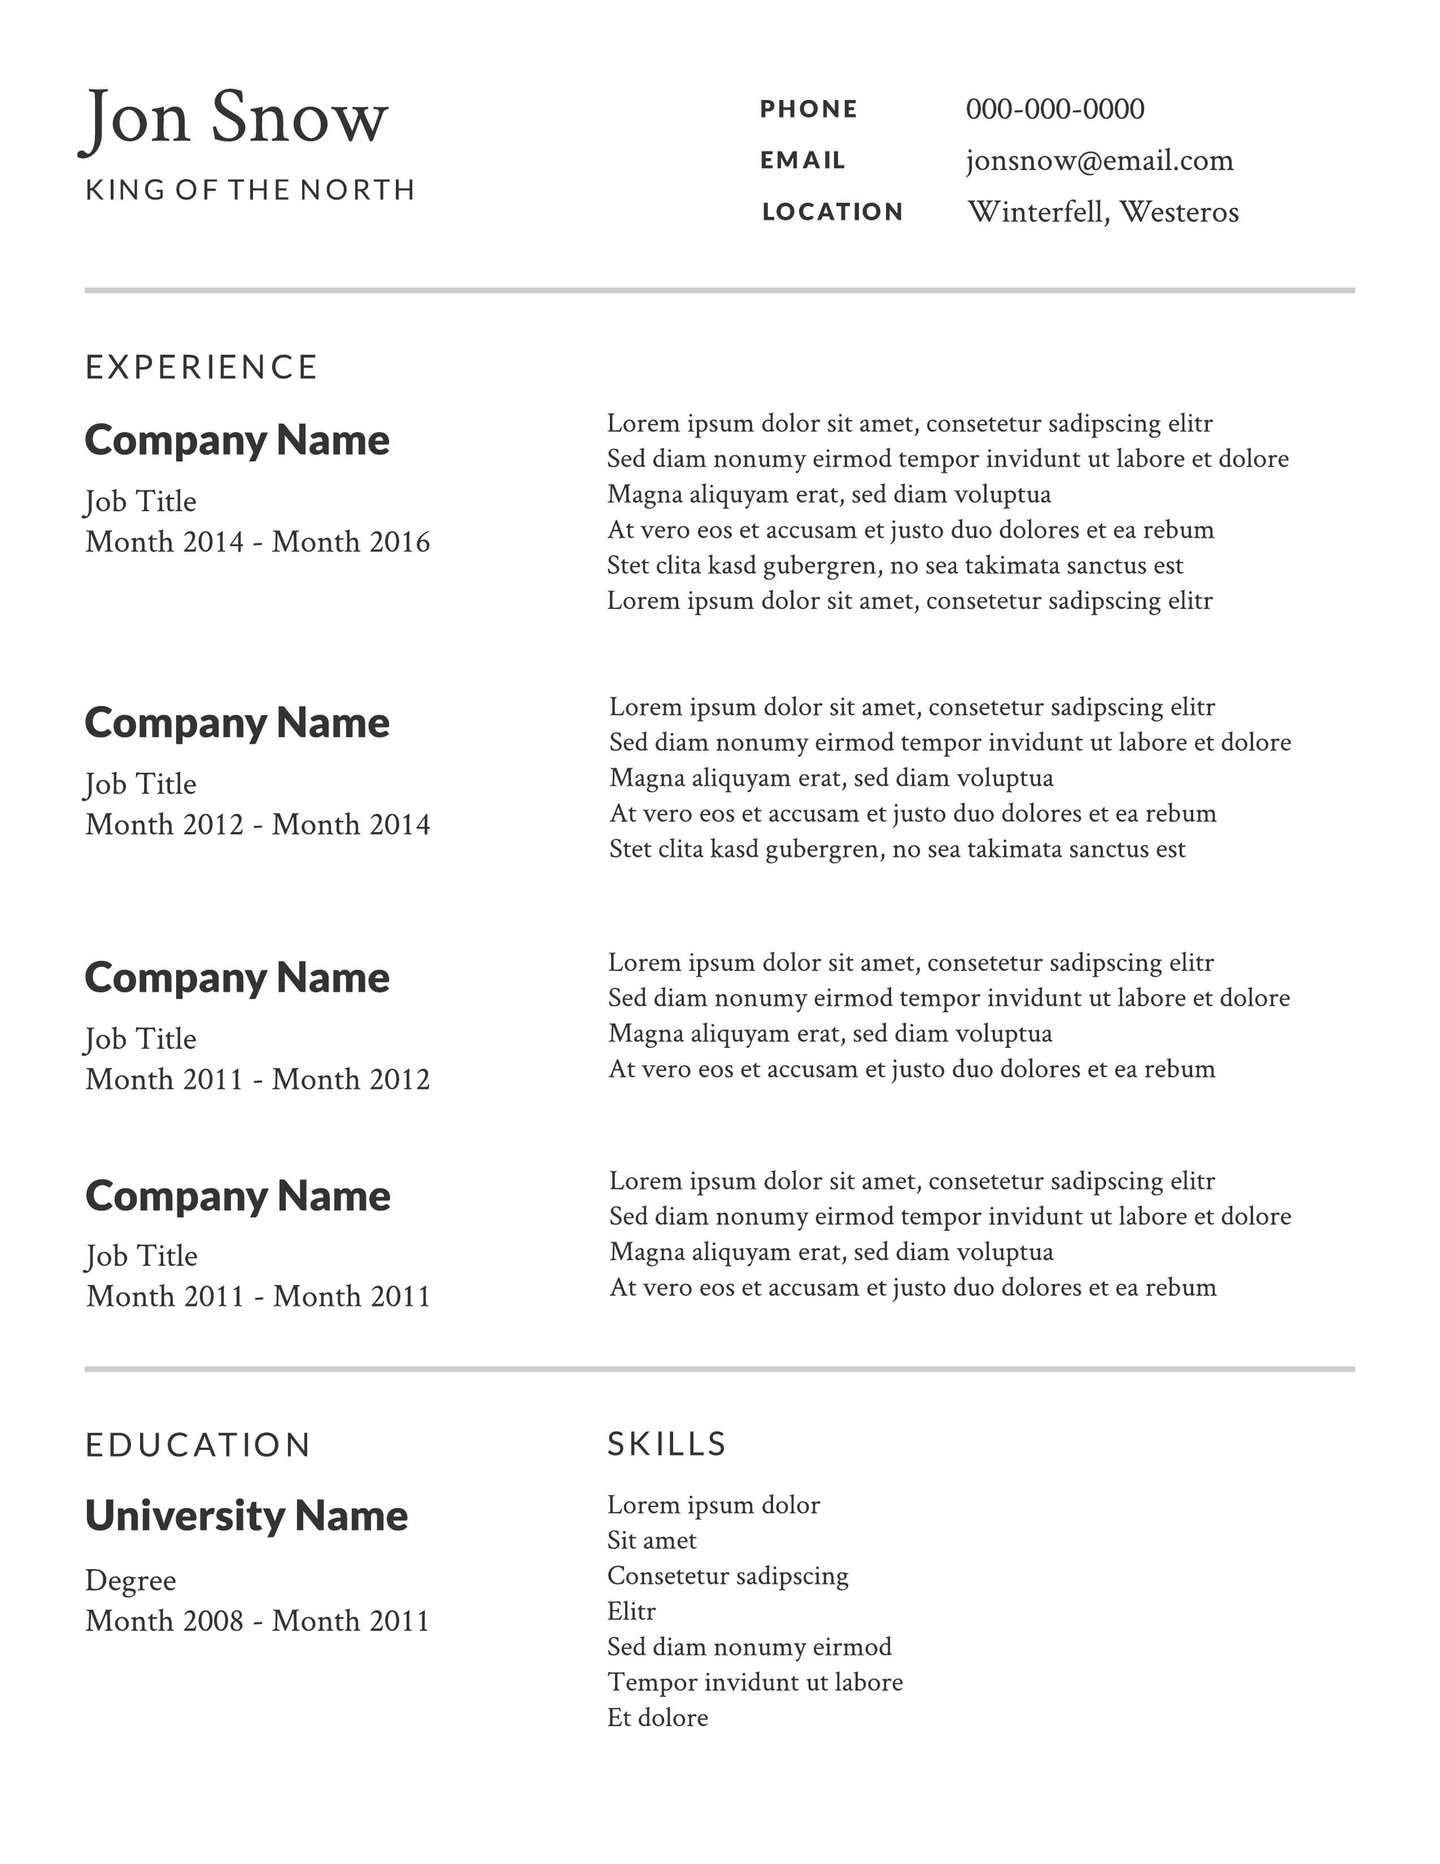 2 free resume templates examples lucidpress for Ressume template